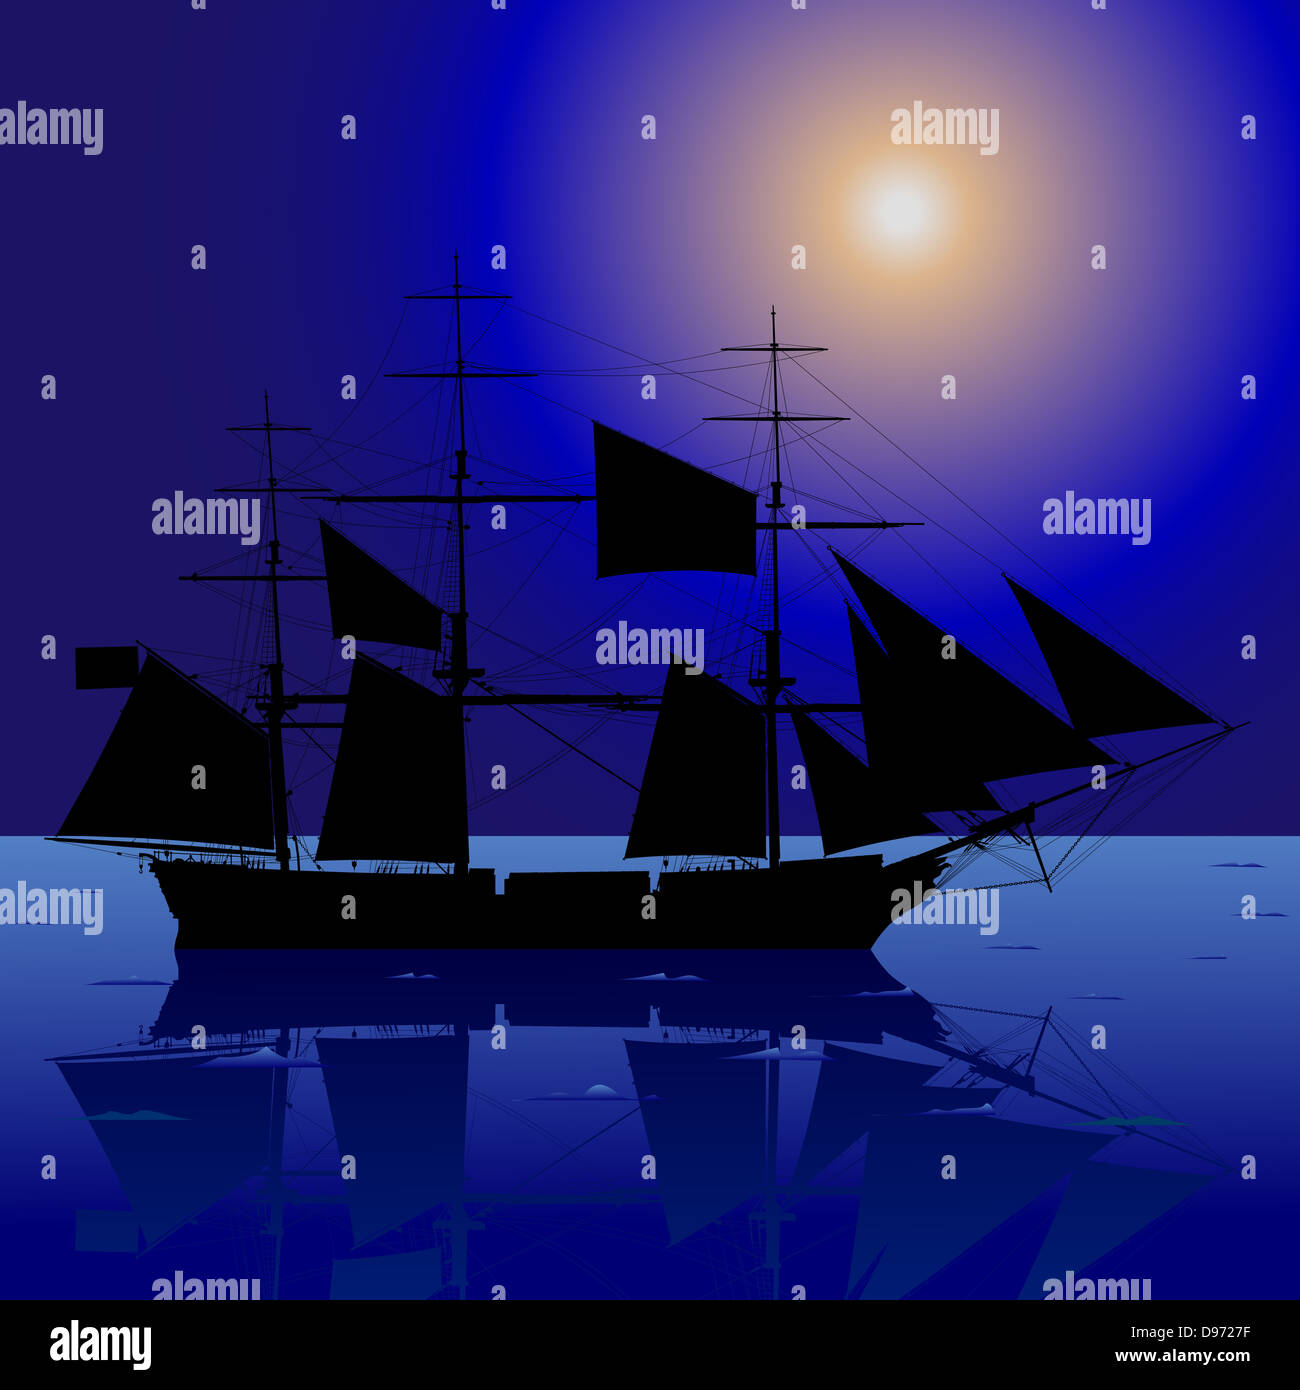 Sailing Ship In The Night Sea